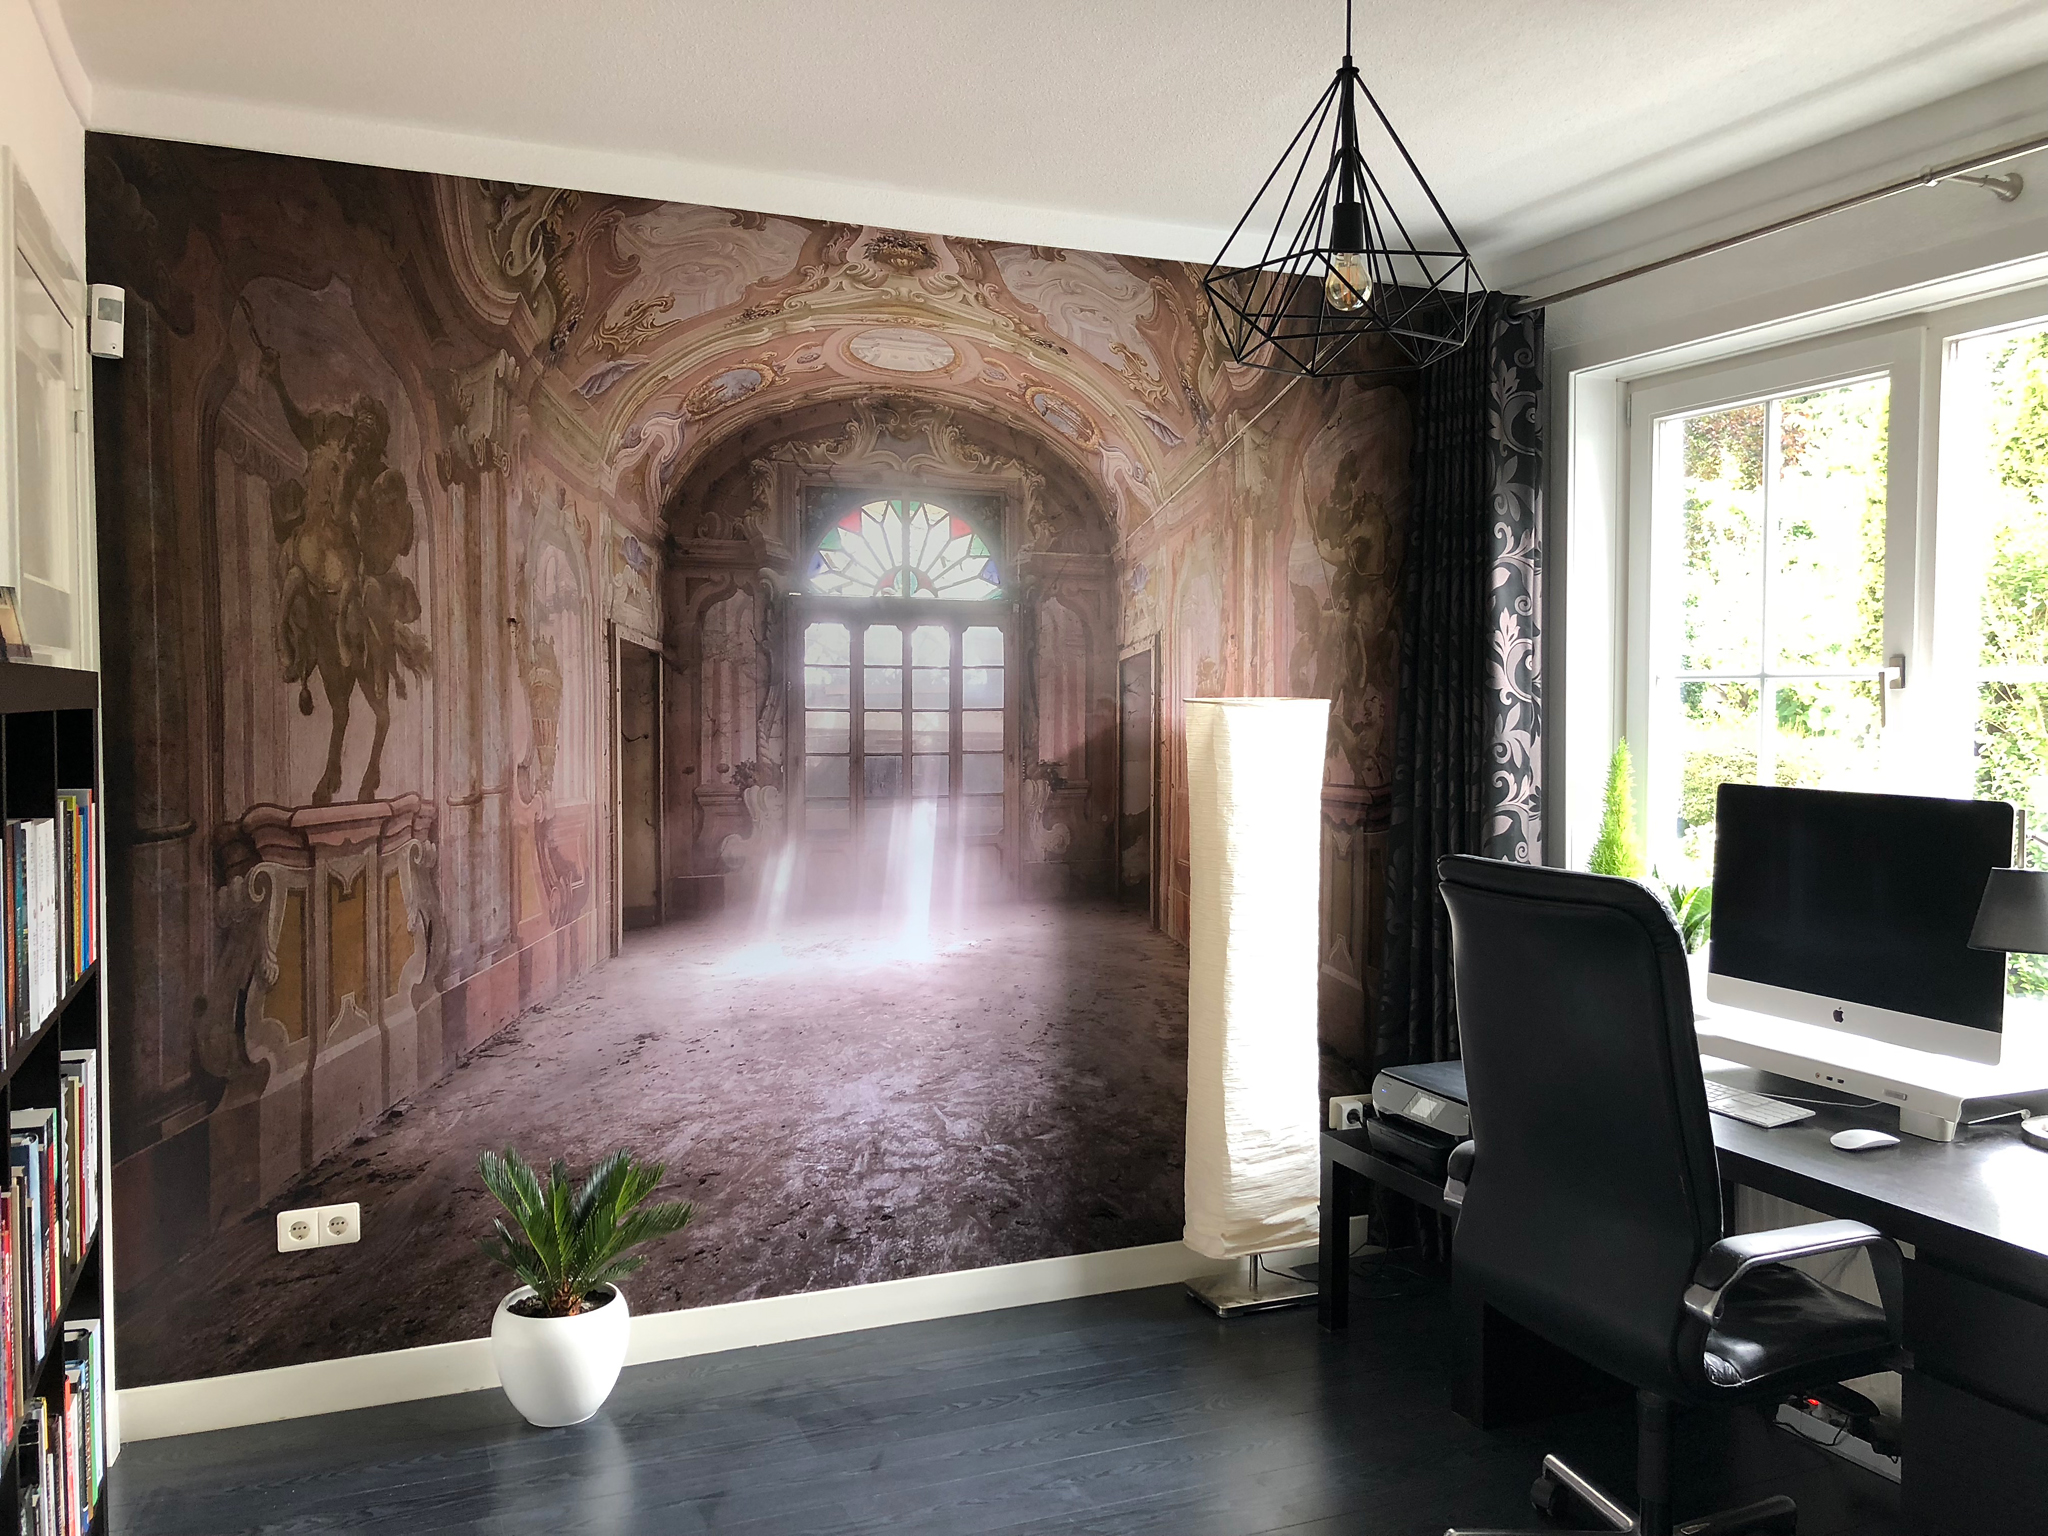 Photo Print On Wallpaper To Cover Your Whole Wall Urban Photography By Roman Robroek